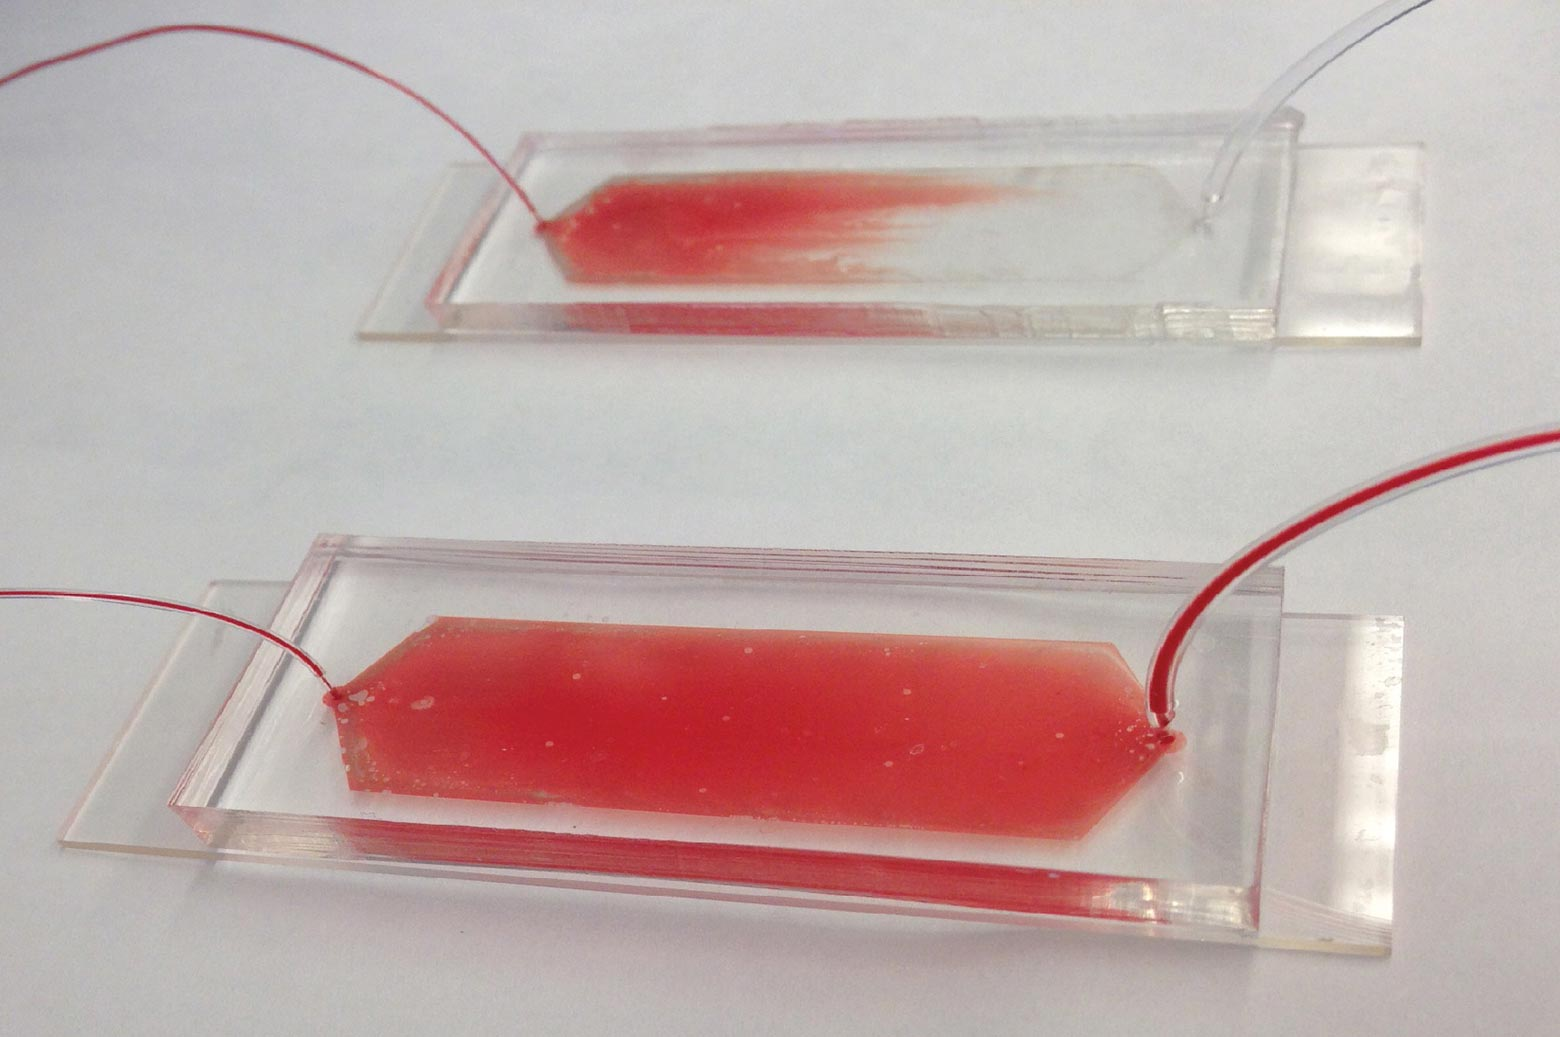 The device captures cancer cells from a blood sample